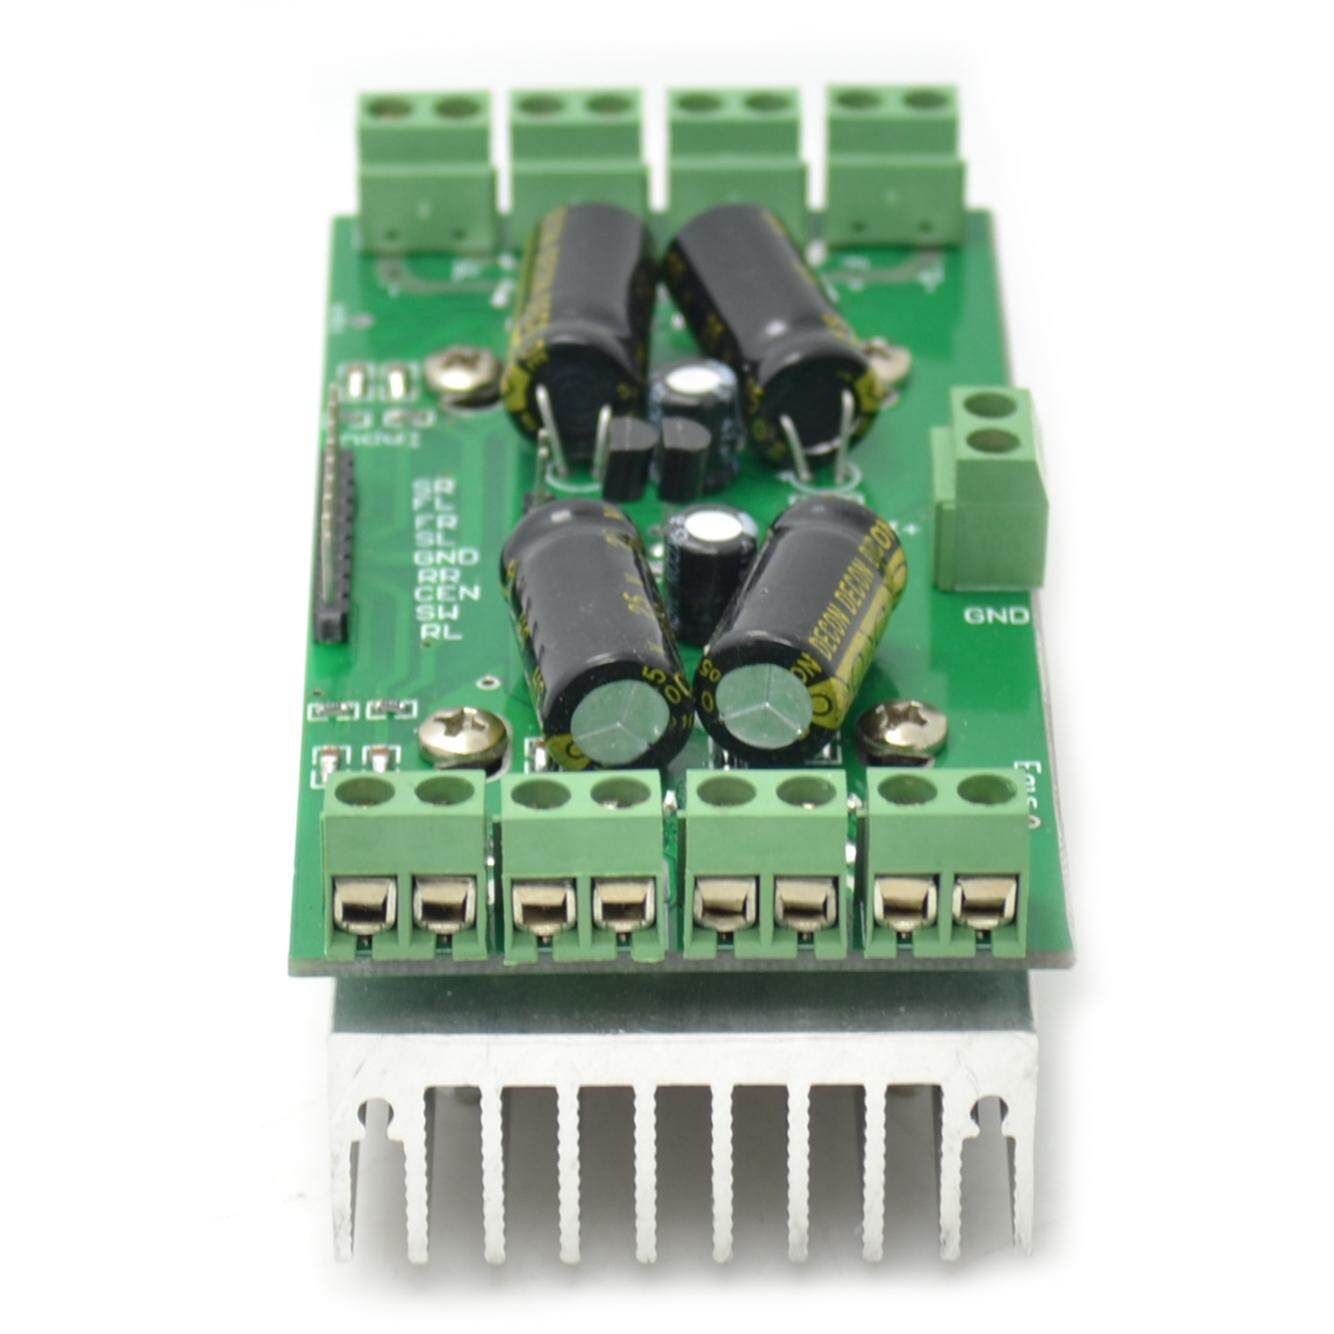 Tda8950 Class D Amplifier Board 2x120w Ac 24v Intl Details About Sub 150w Subwoofer Kit 2sa1943 2sc5200 Zy 8chgf 71 8 Channel